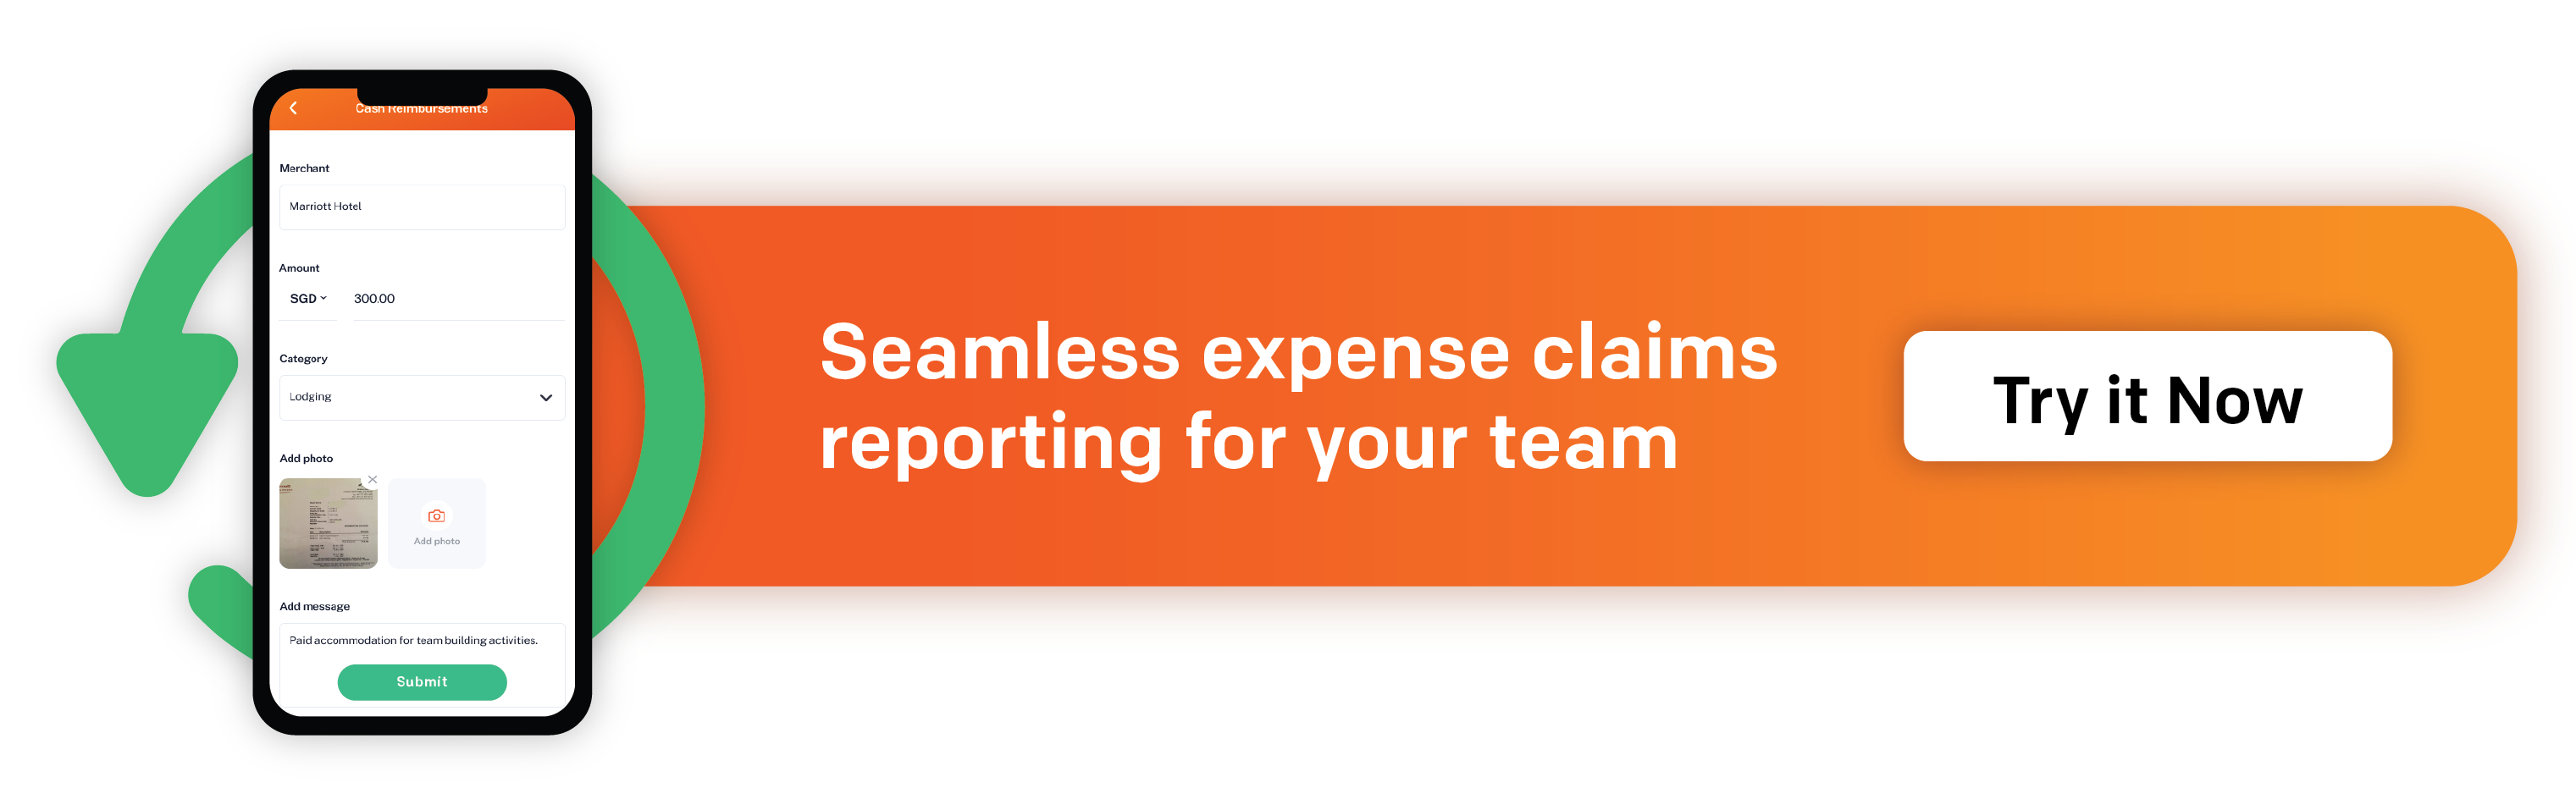 Seamless expense claims reporting for your team. Try it with Spenmo